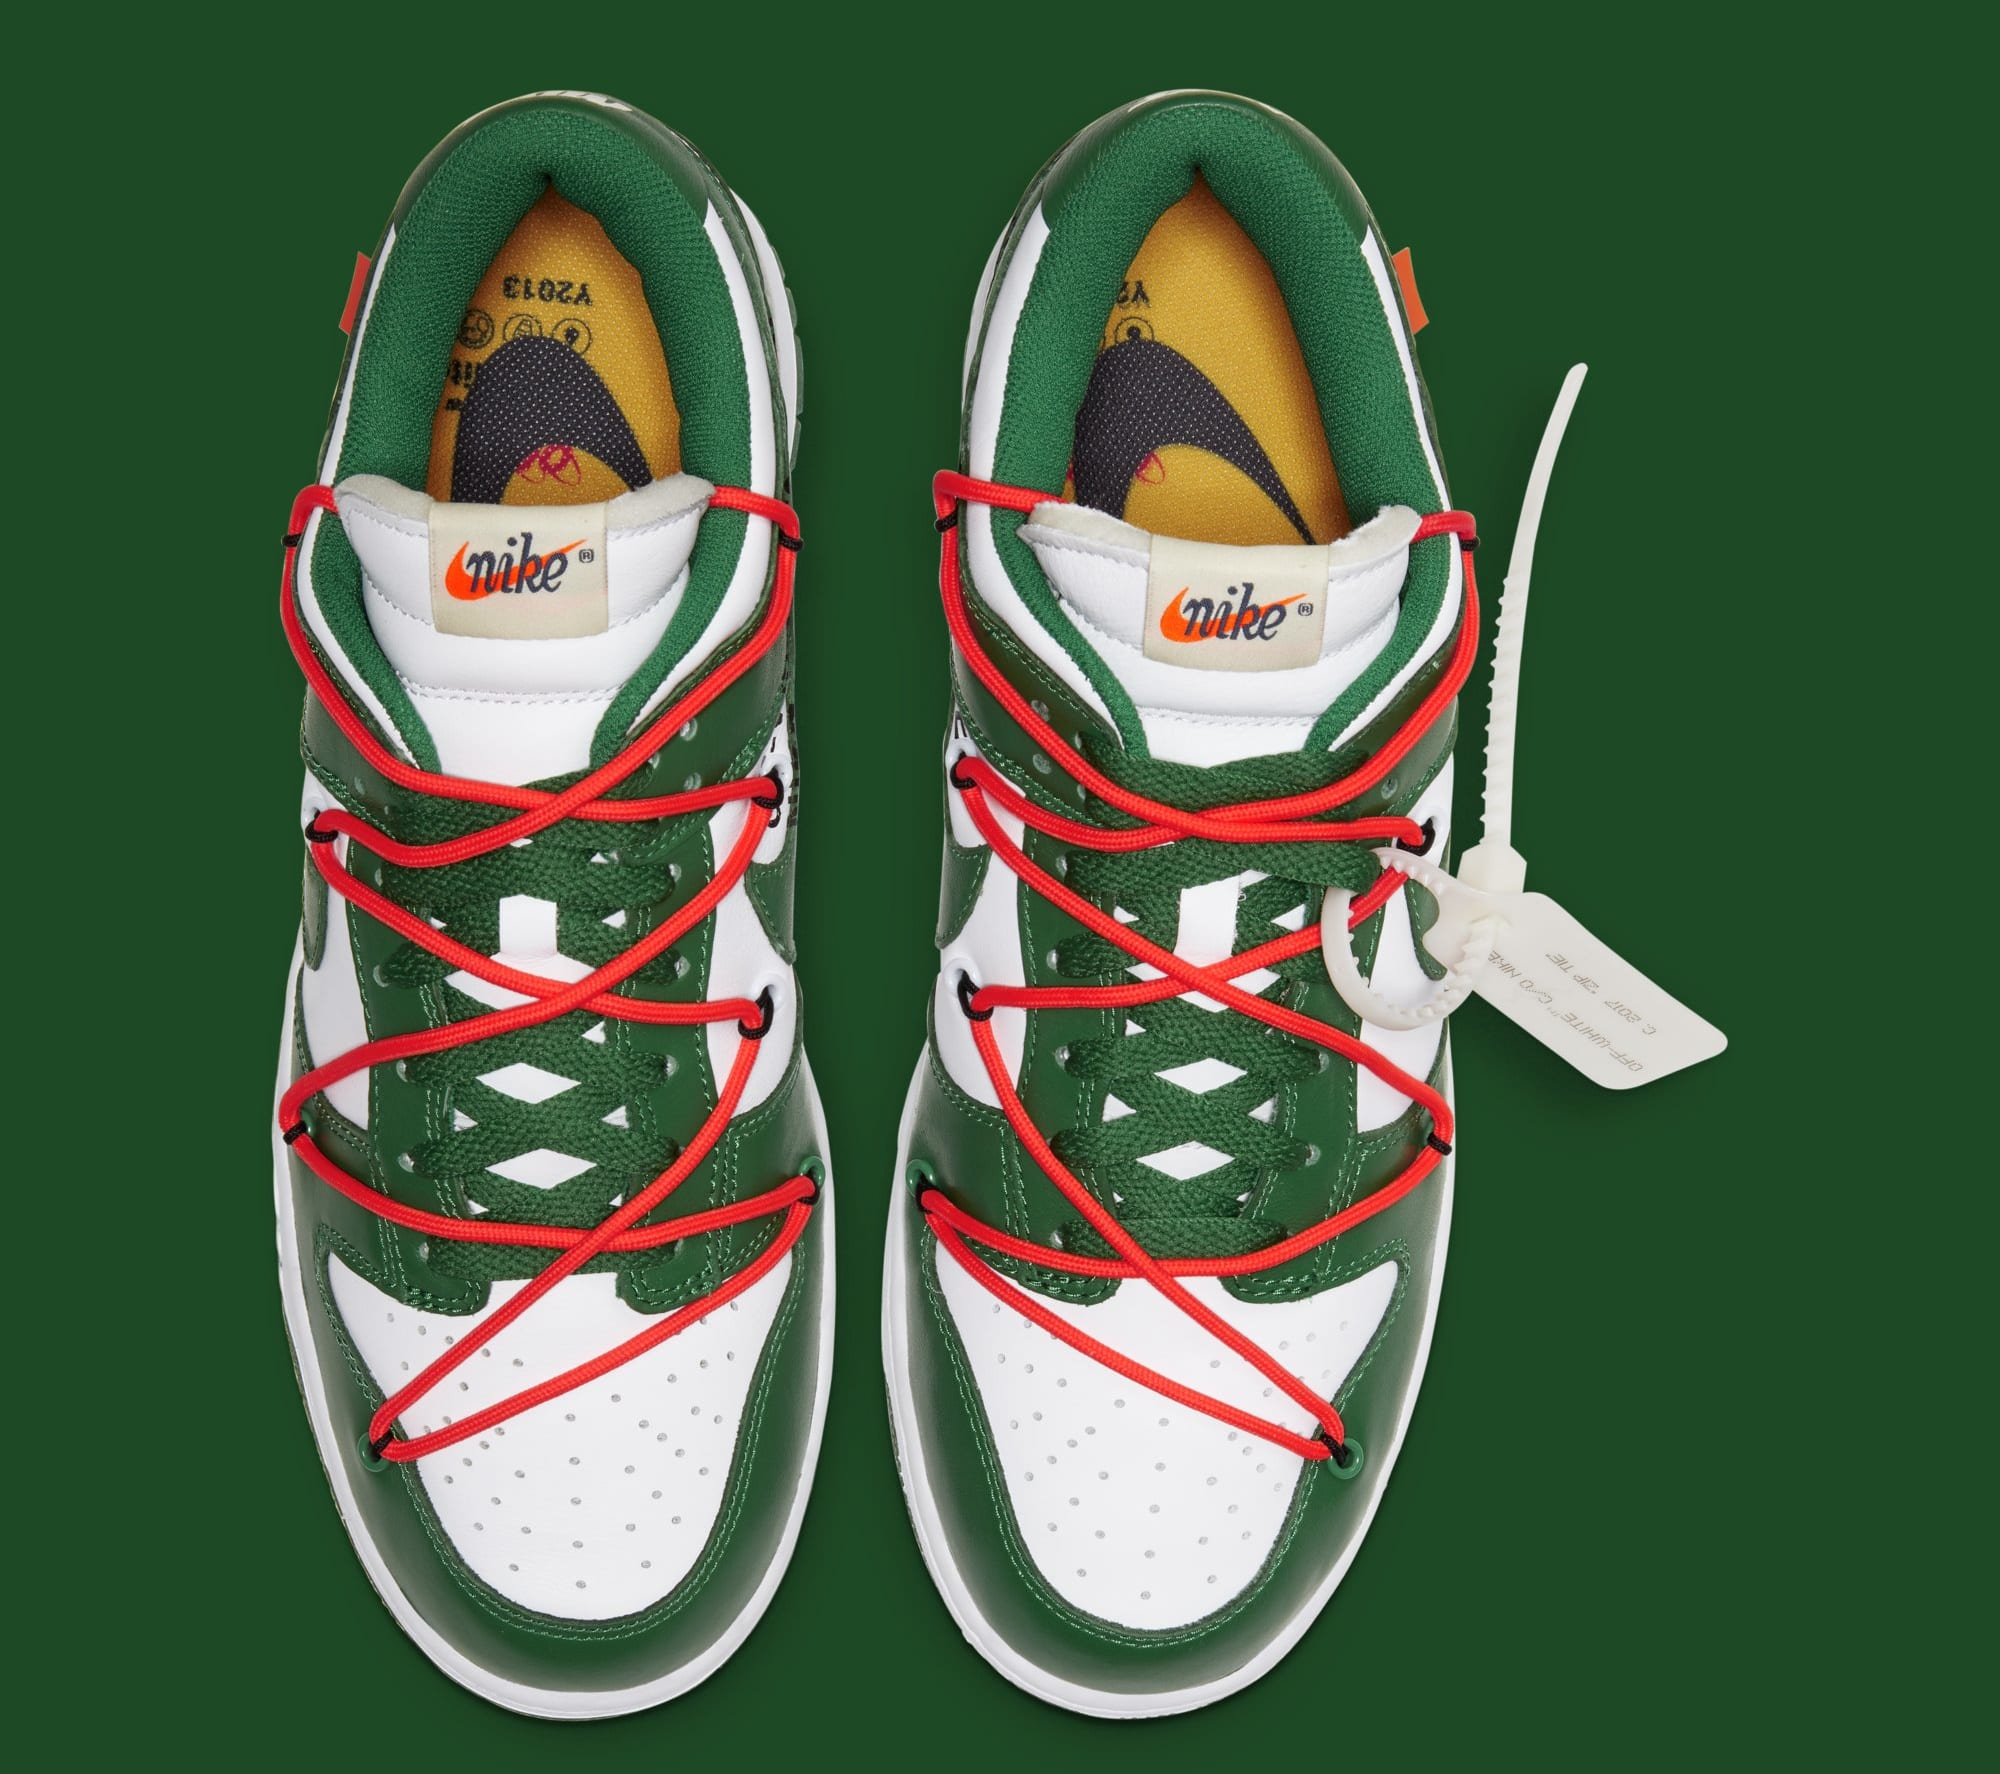 Off-White x Nike Dunk Low 'White/Pine Green' CT0856-100 (Top)